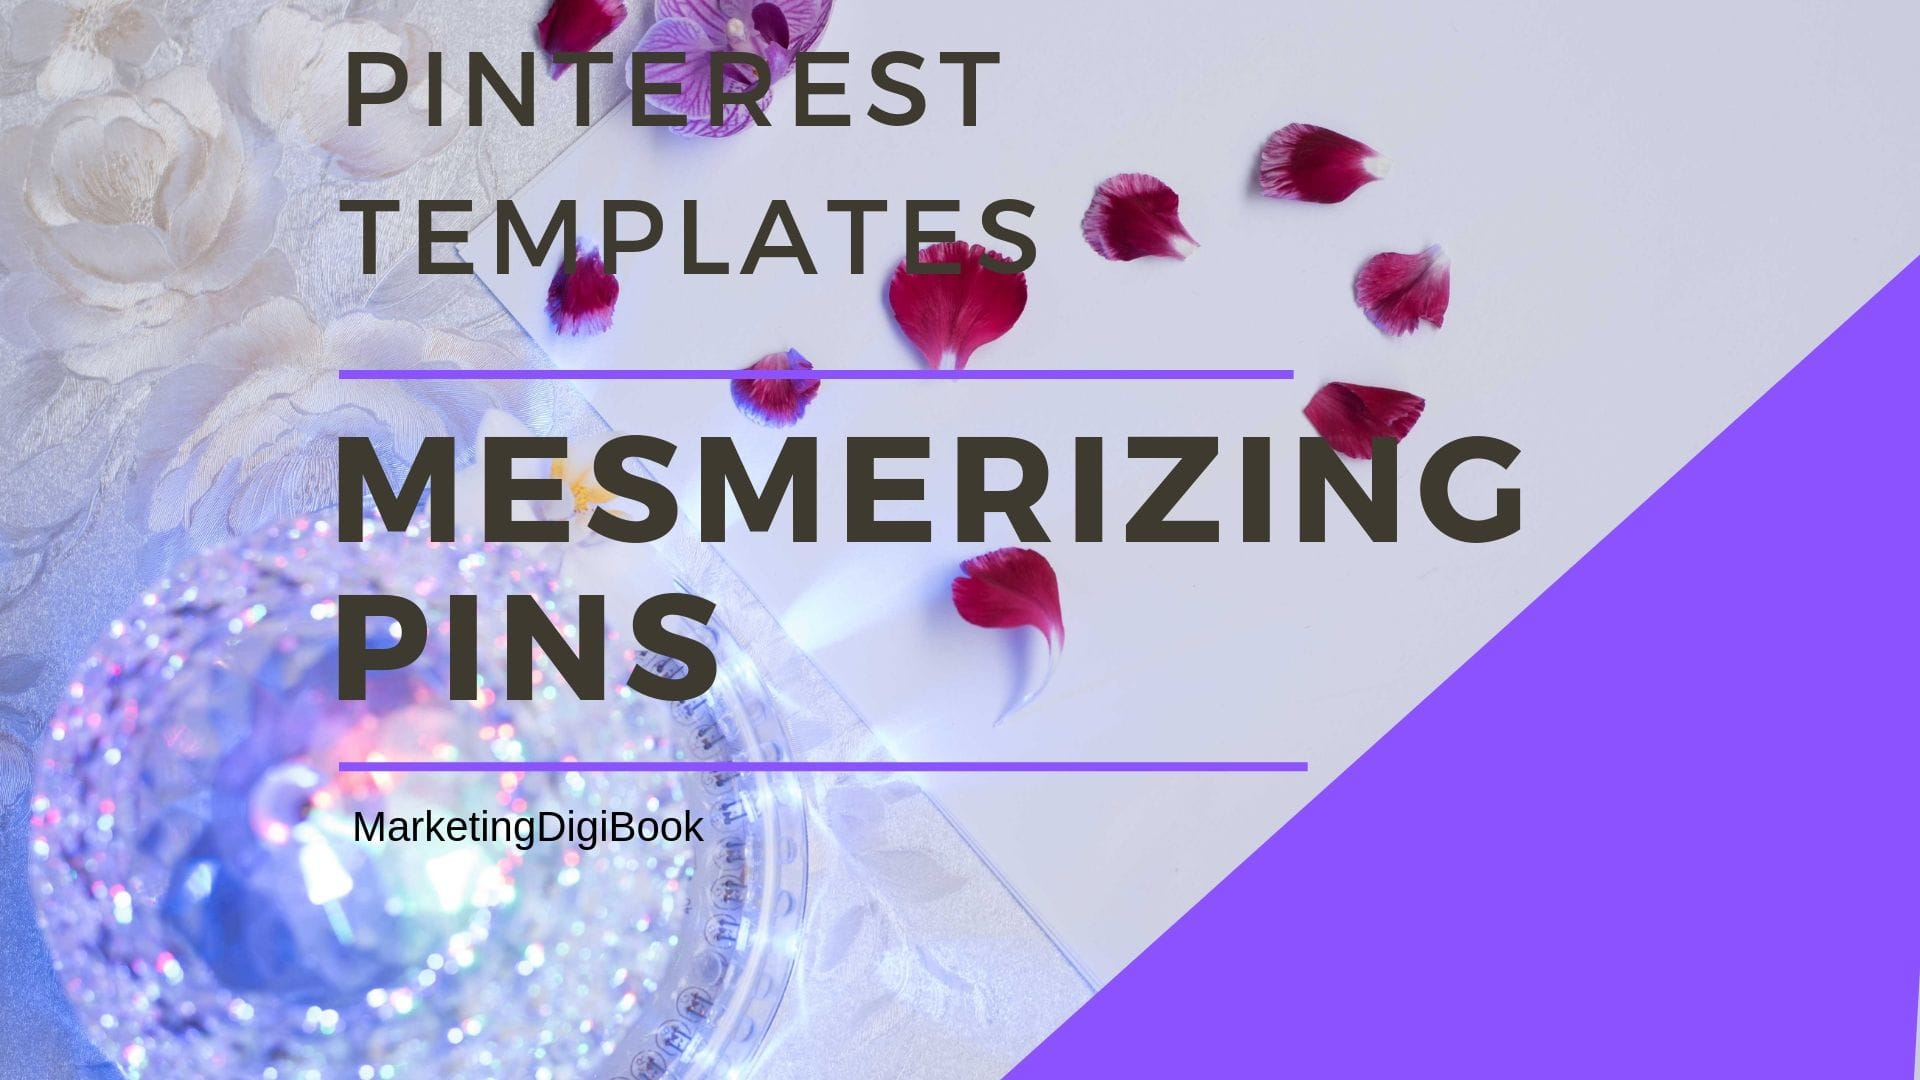 Pinterest Templates - Mesmerizing pins cover 2-min.jpg